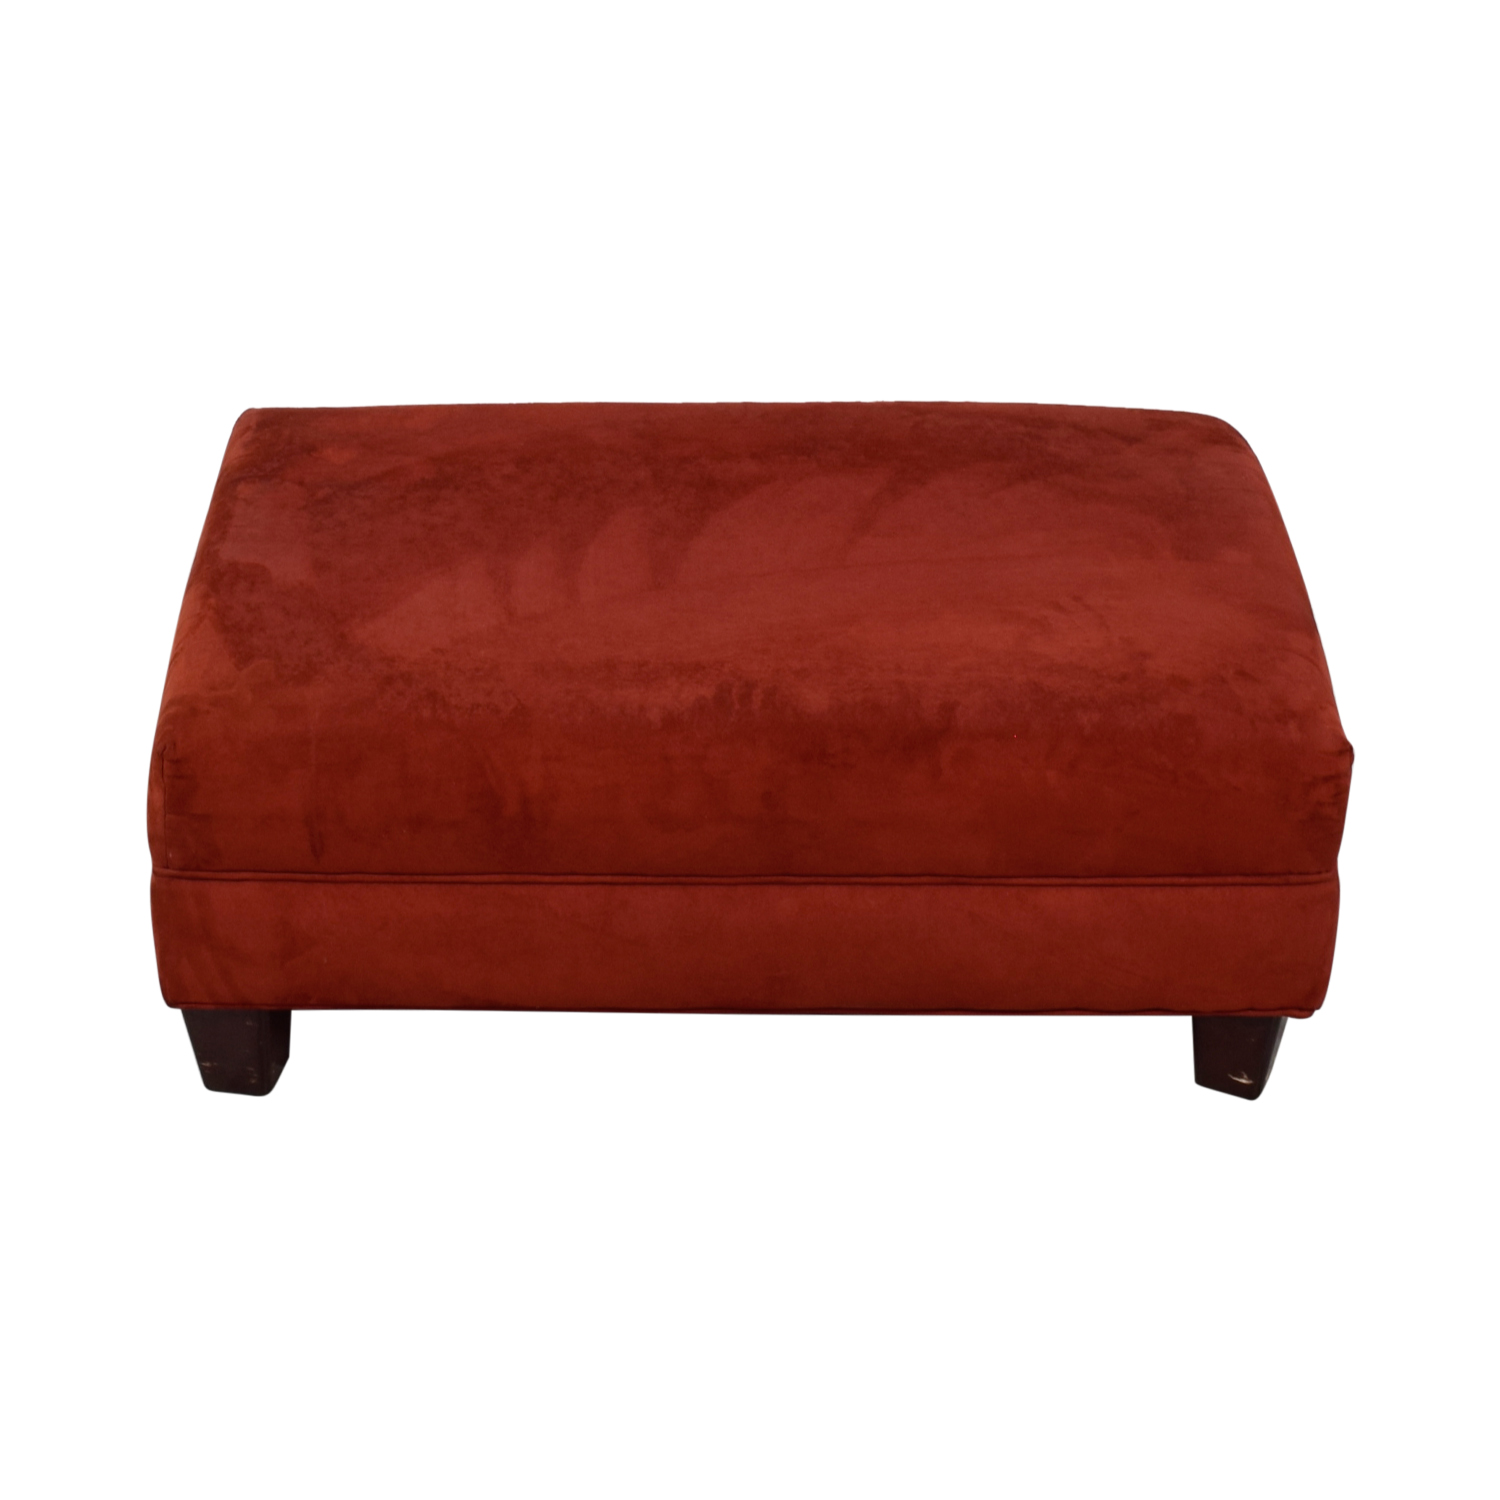 Red Ottoman on sale